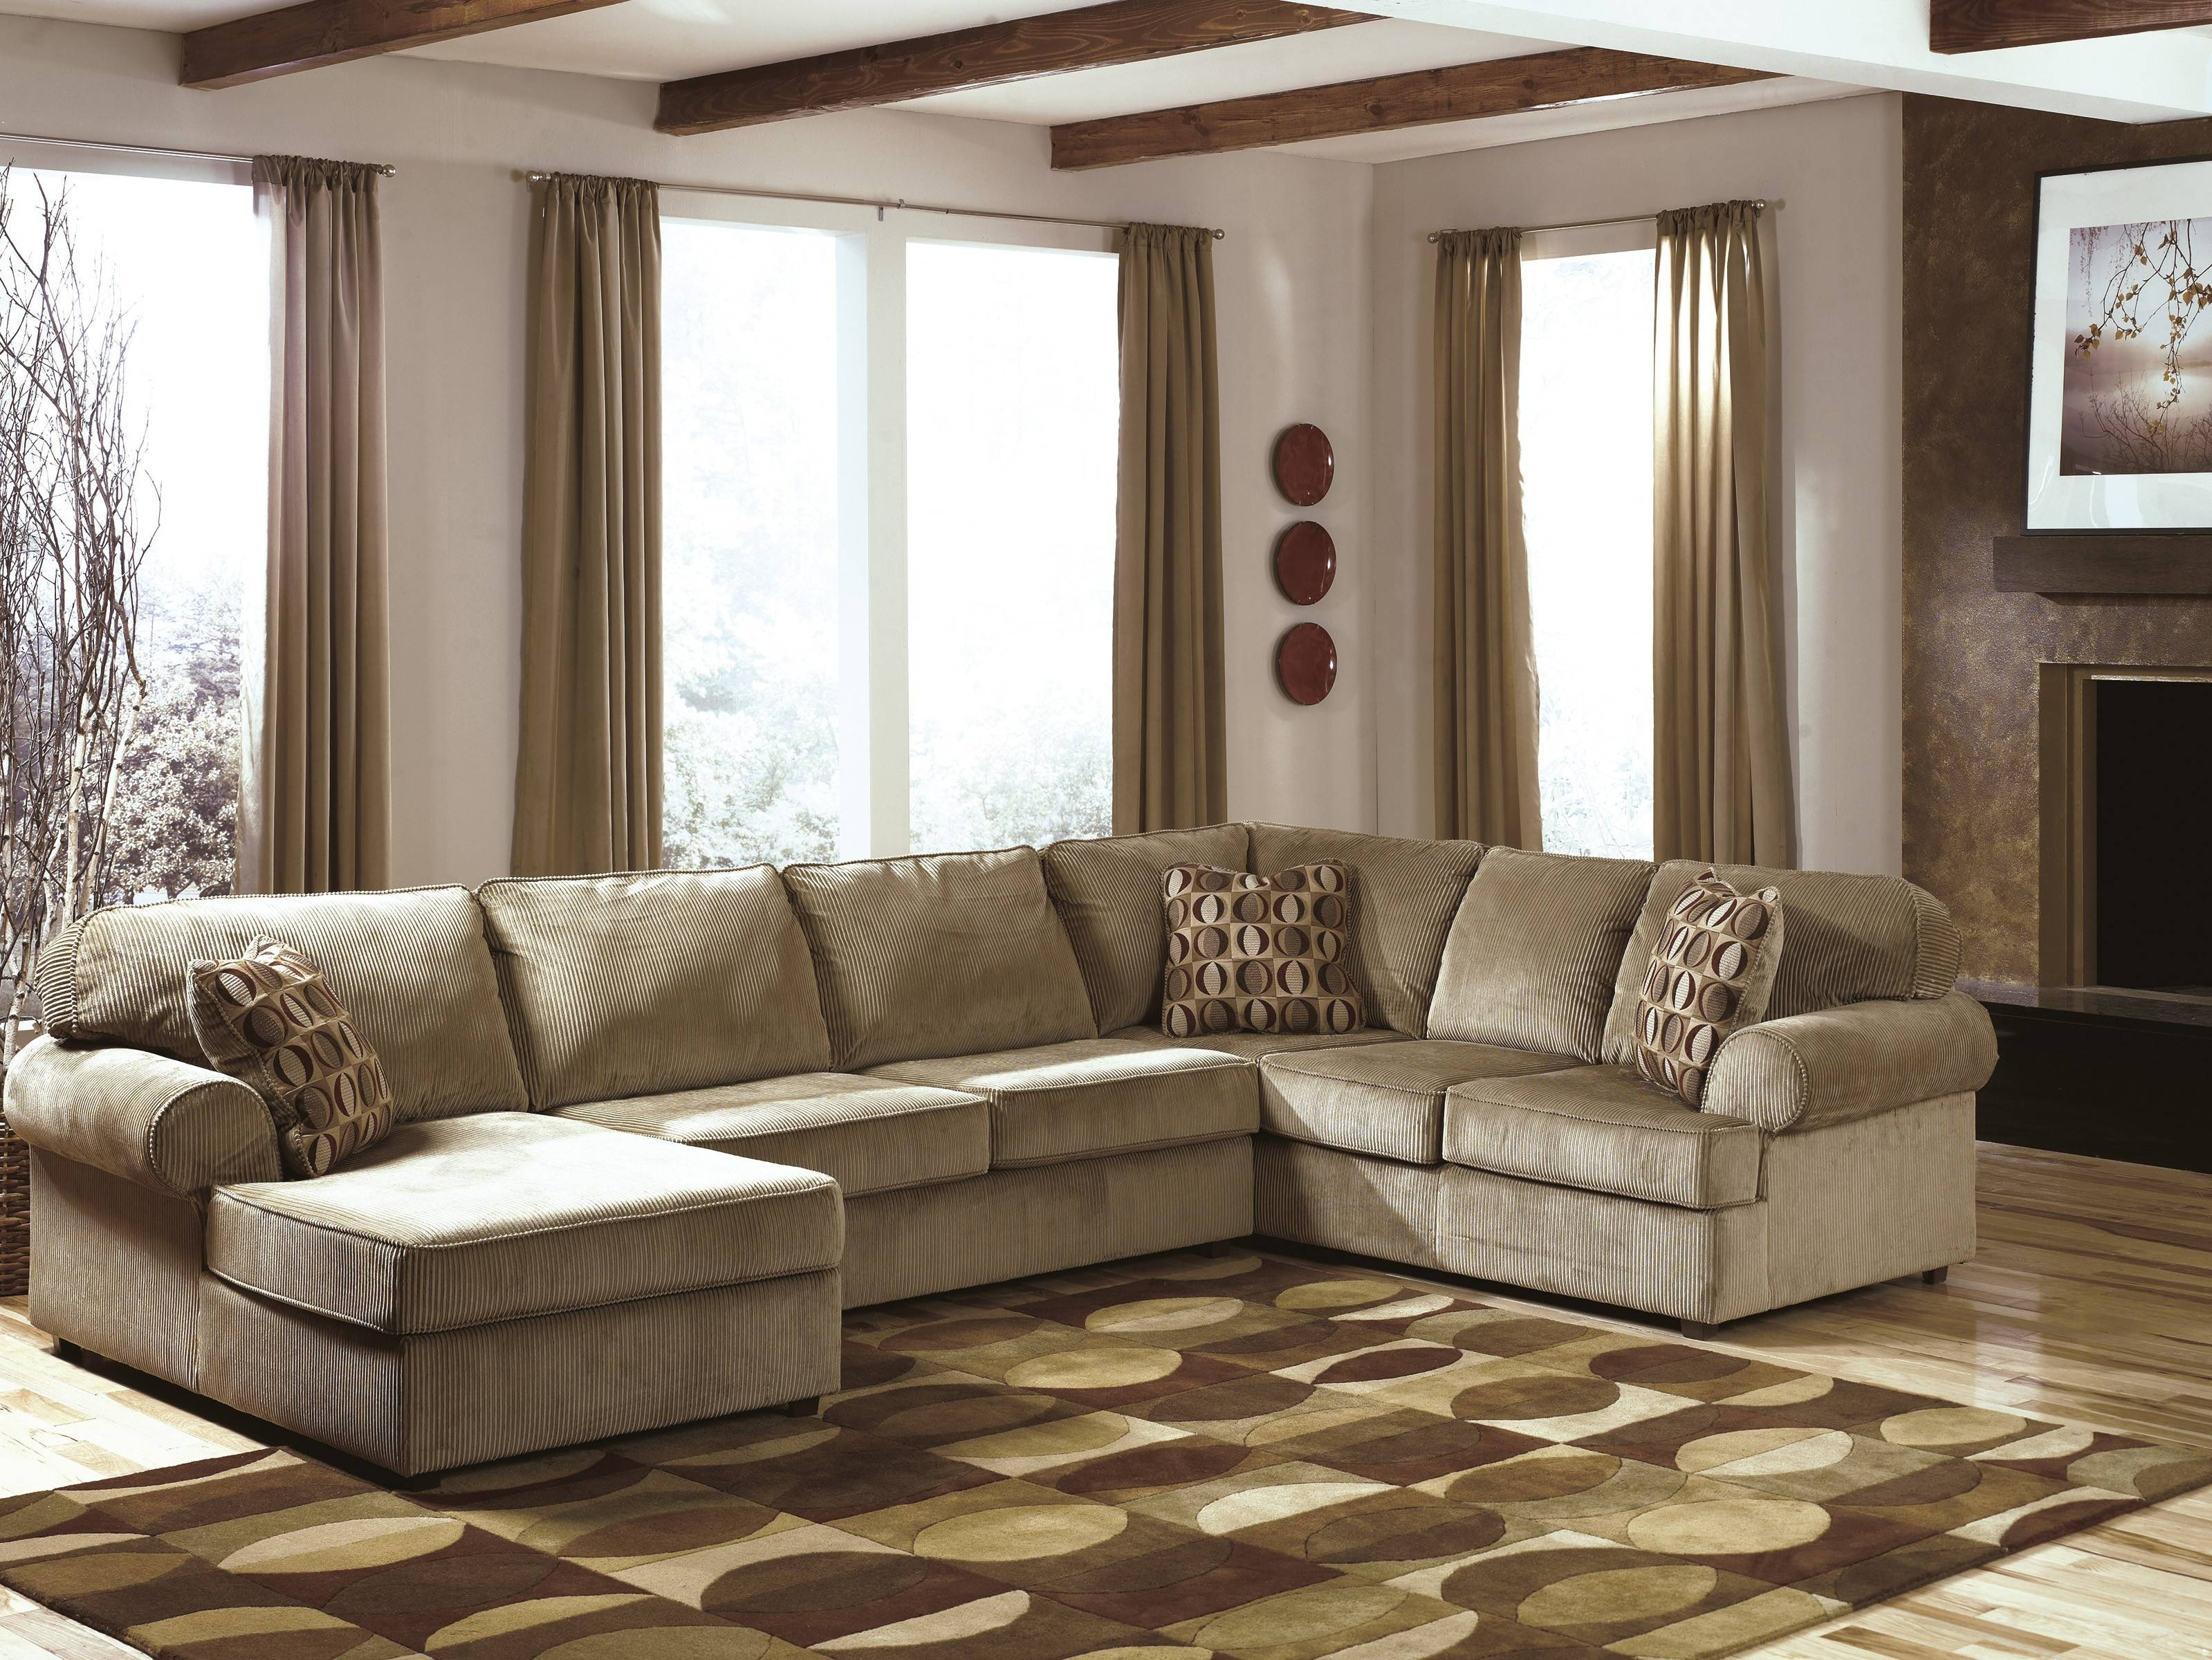 Furniture: Fantastic Sectional Couches With Recliners For Your With Regard To C Shaped Sofa (View 16 of 30)